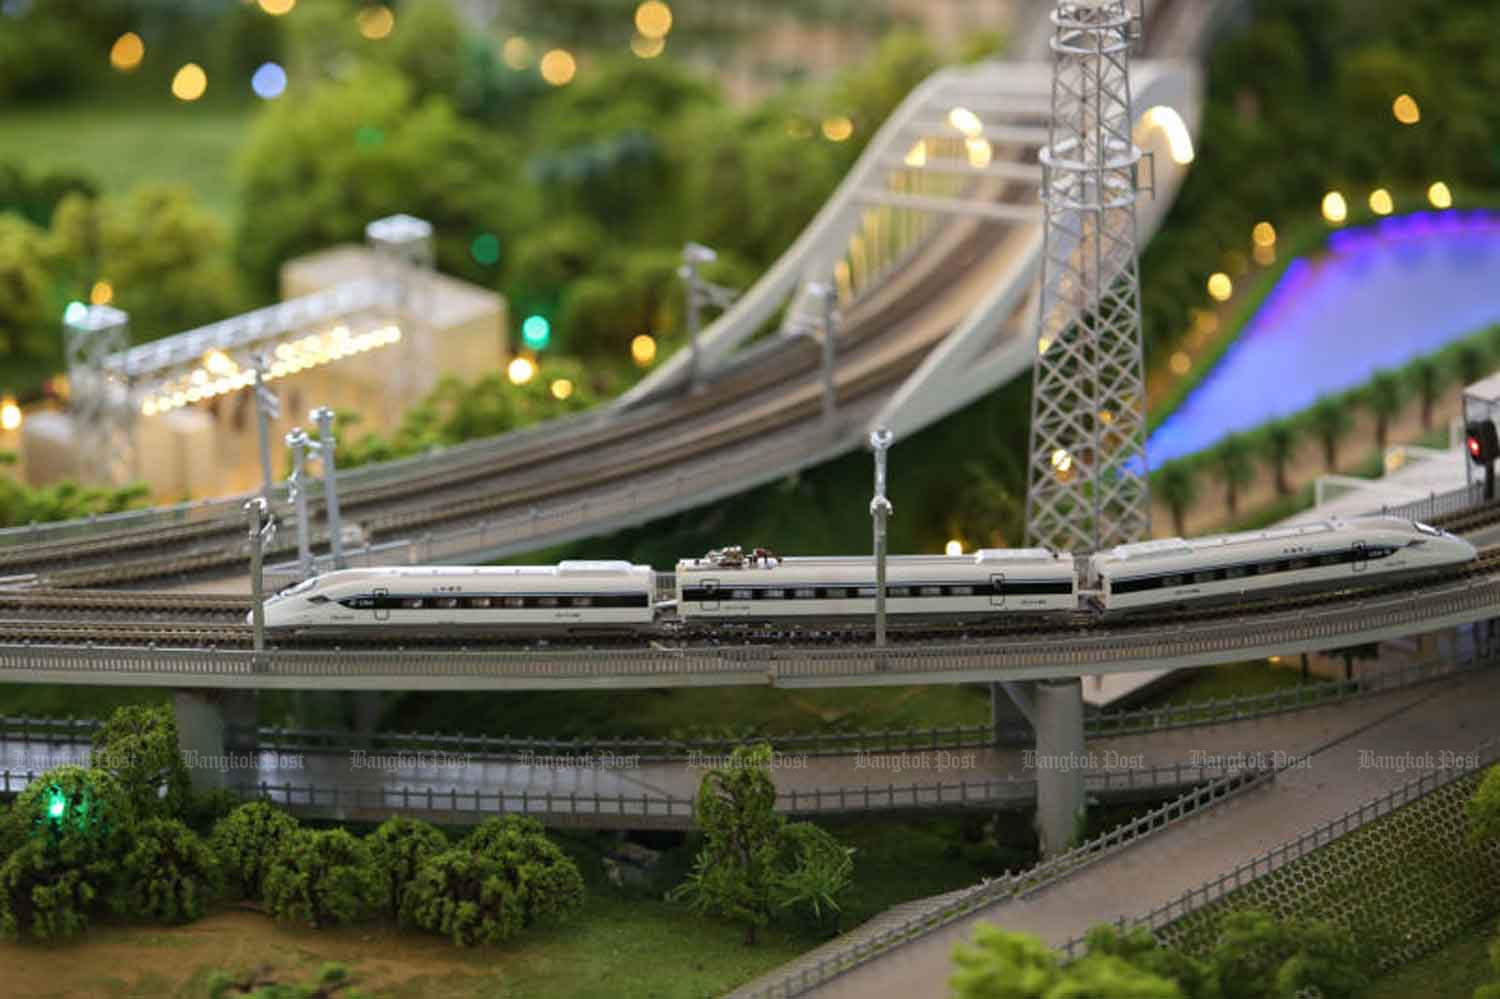 A miniature version of the Thai-Chinese high-speed railway scheme's first section from Bangkok to Nakhon Ratchasima. (Bangkok Post photo)